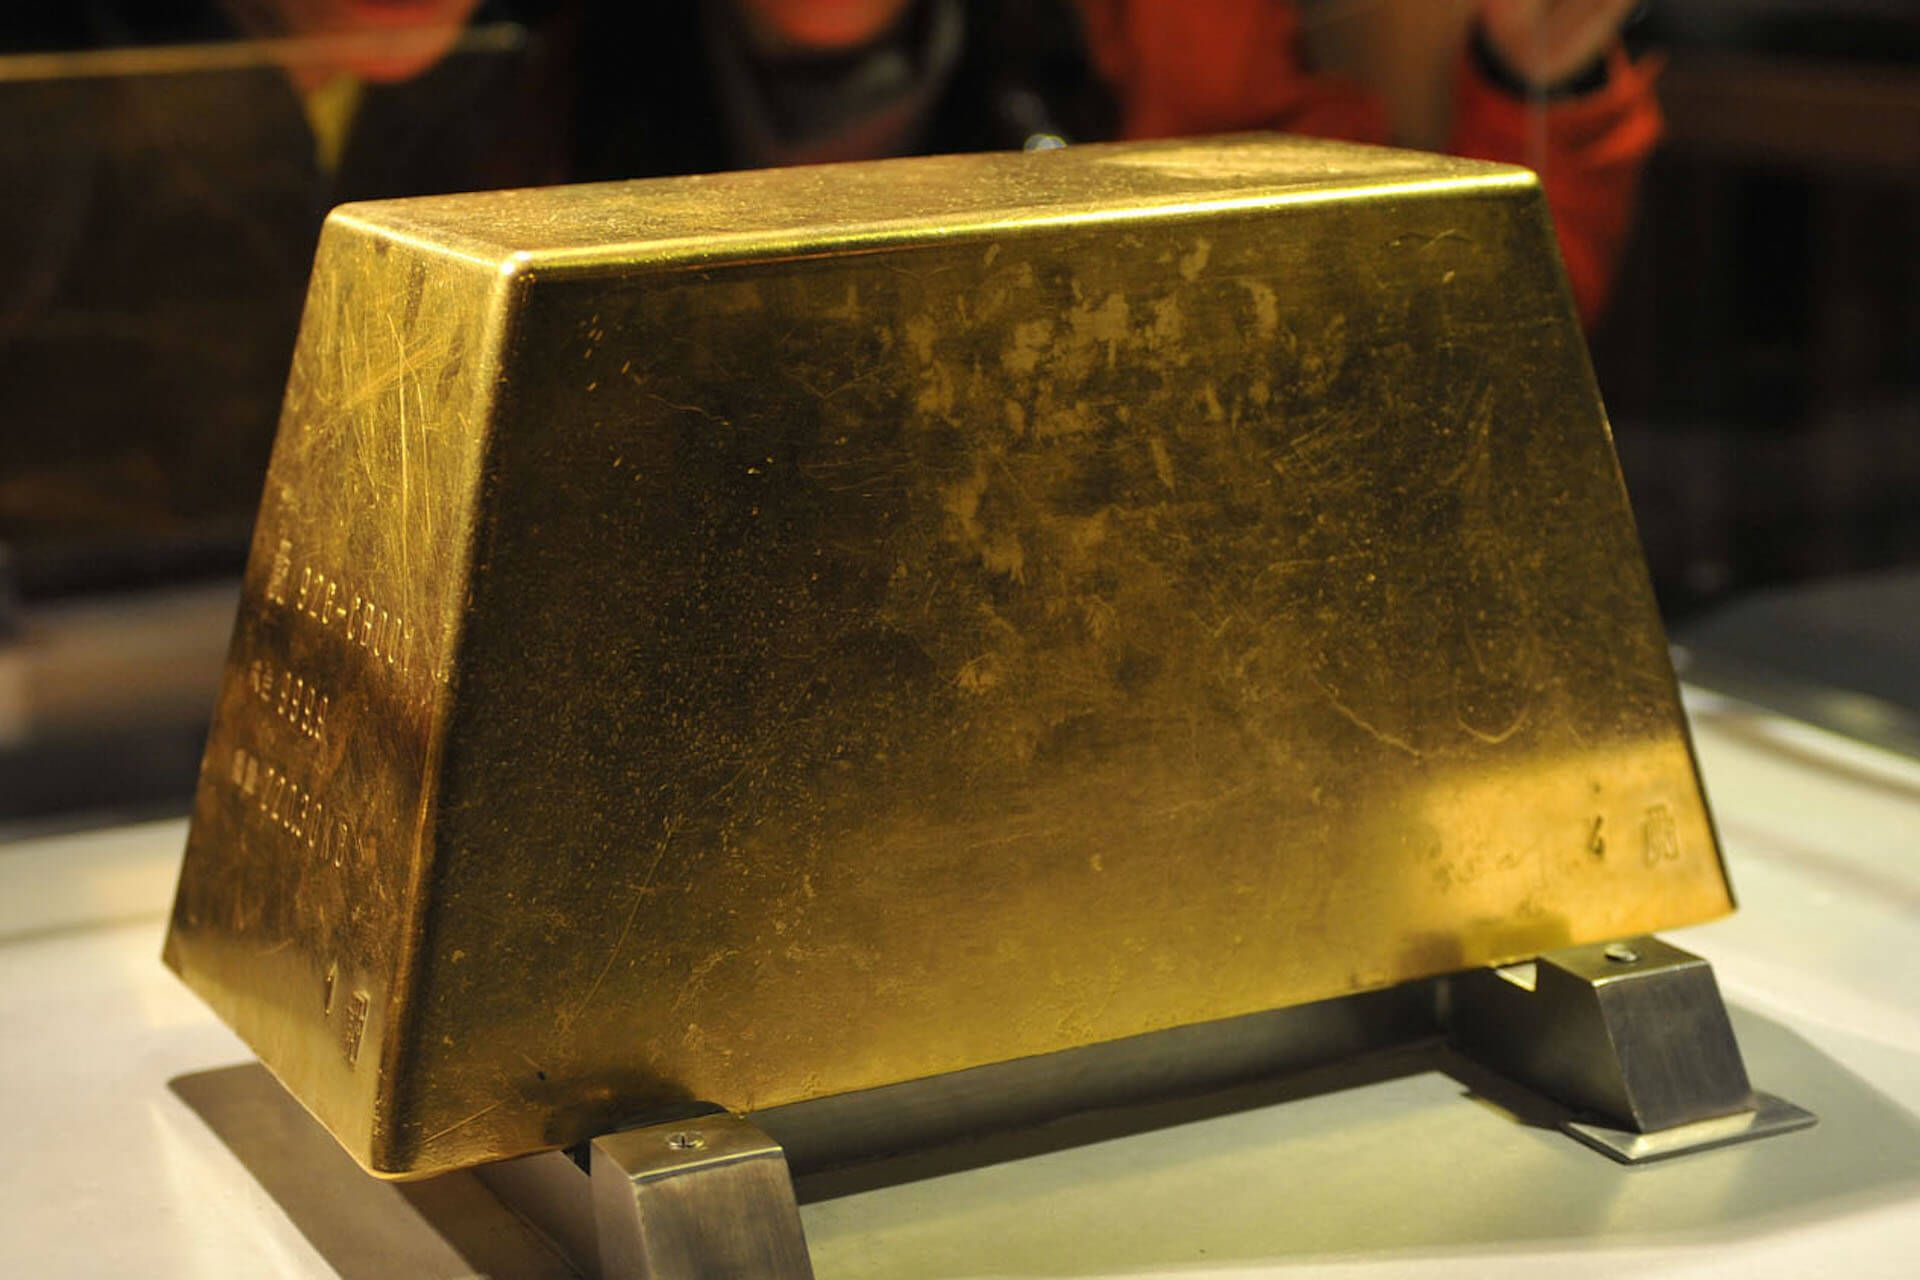 Small Loans No Credit >> What is the Biggest Gold Bar in the World Worth? - FinanceBuzz